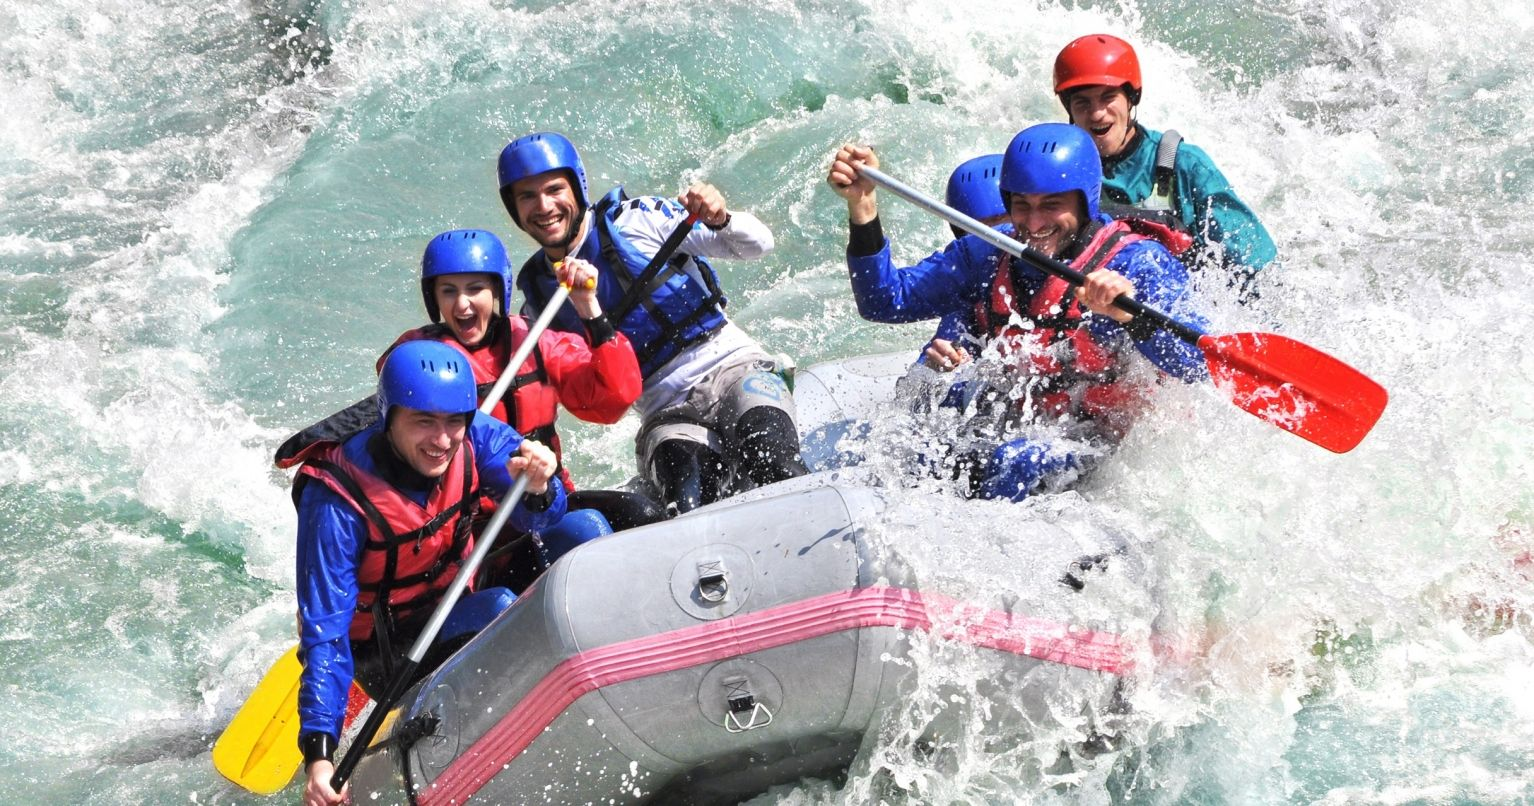 Extreme White Water Rafting United Kingdom Tinggly Experience Gifts